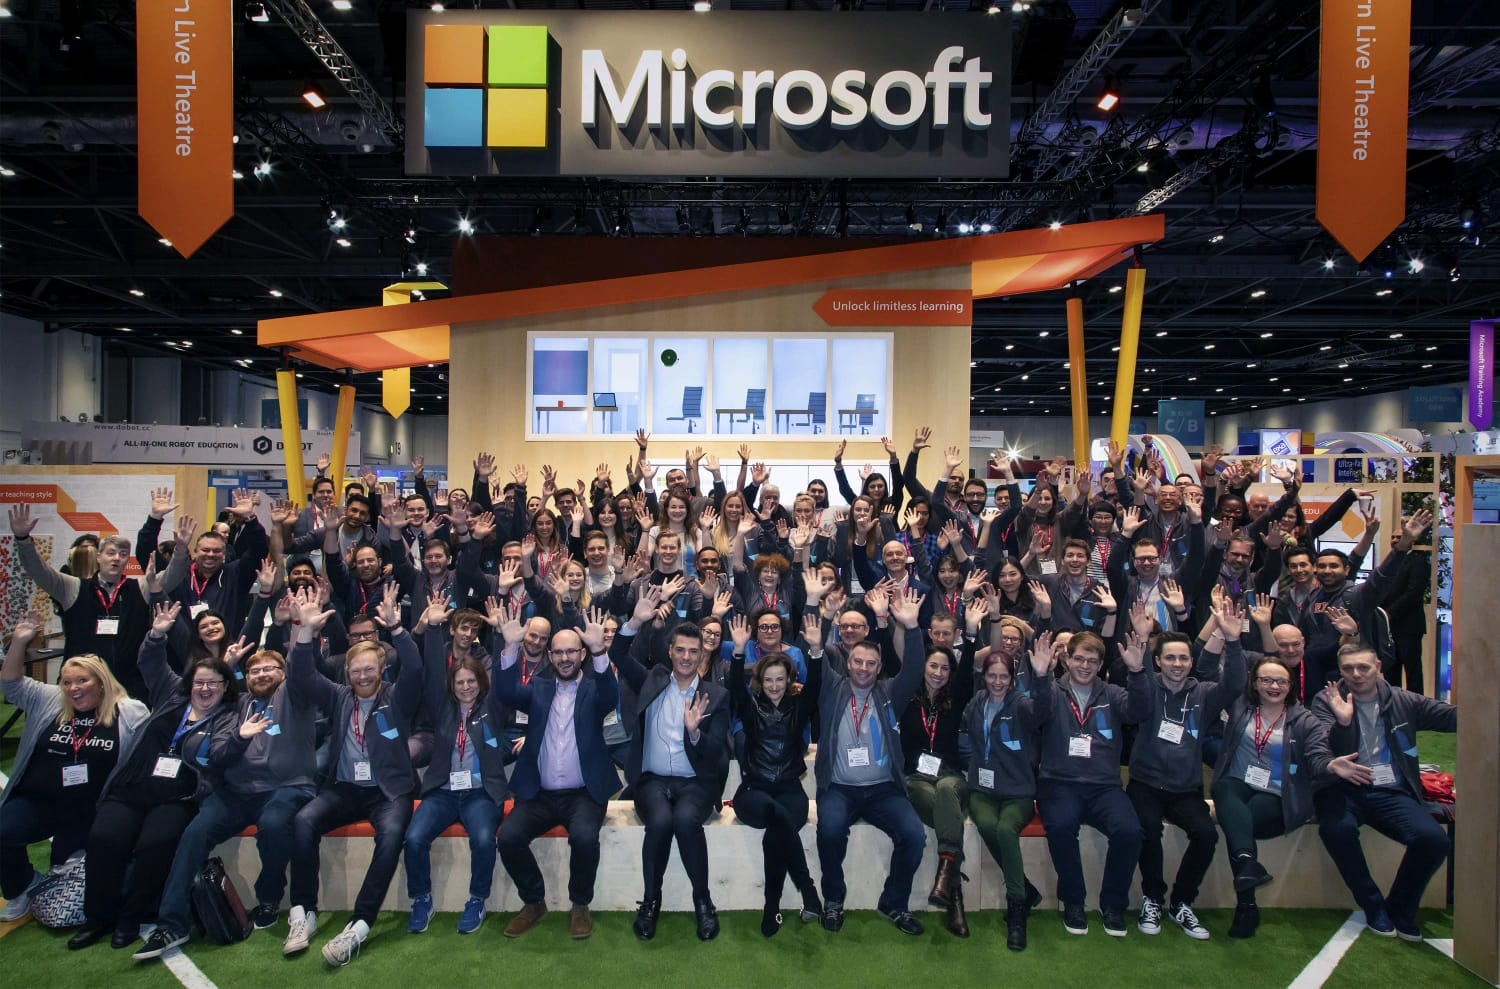 Image of a large group of people on the Microsoft stand at Bett